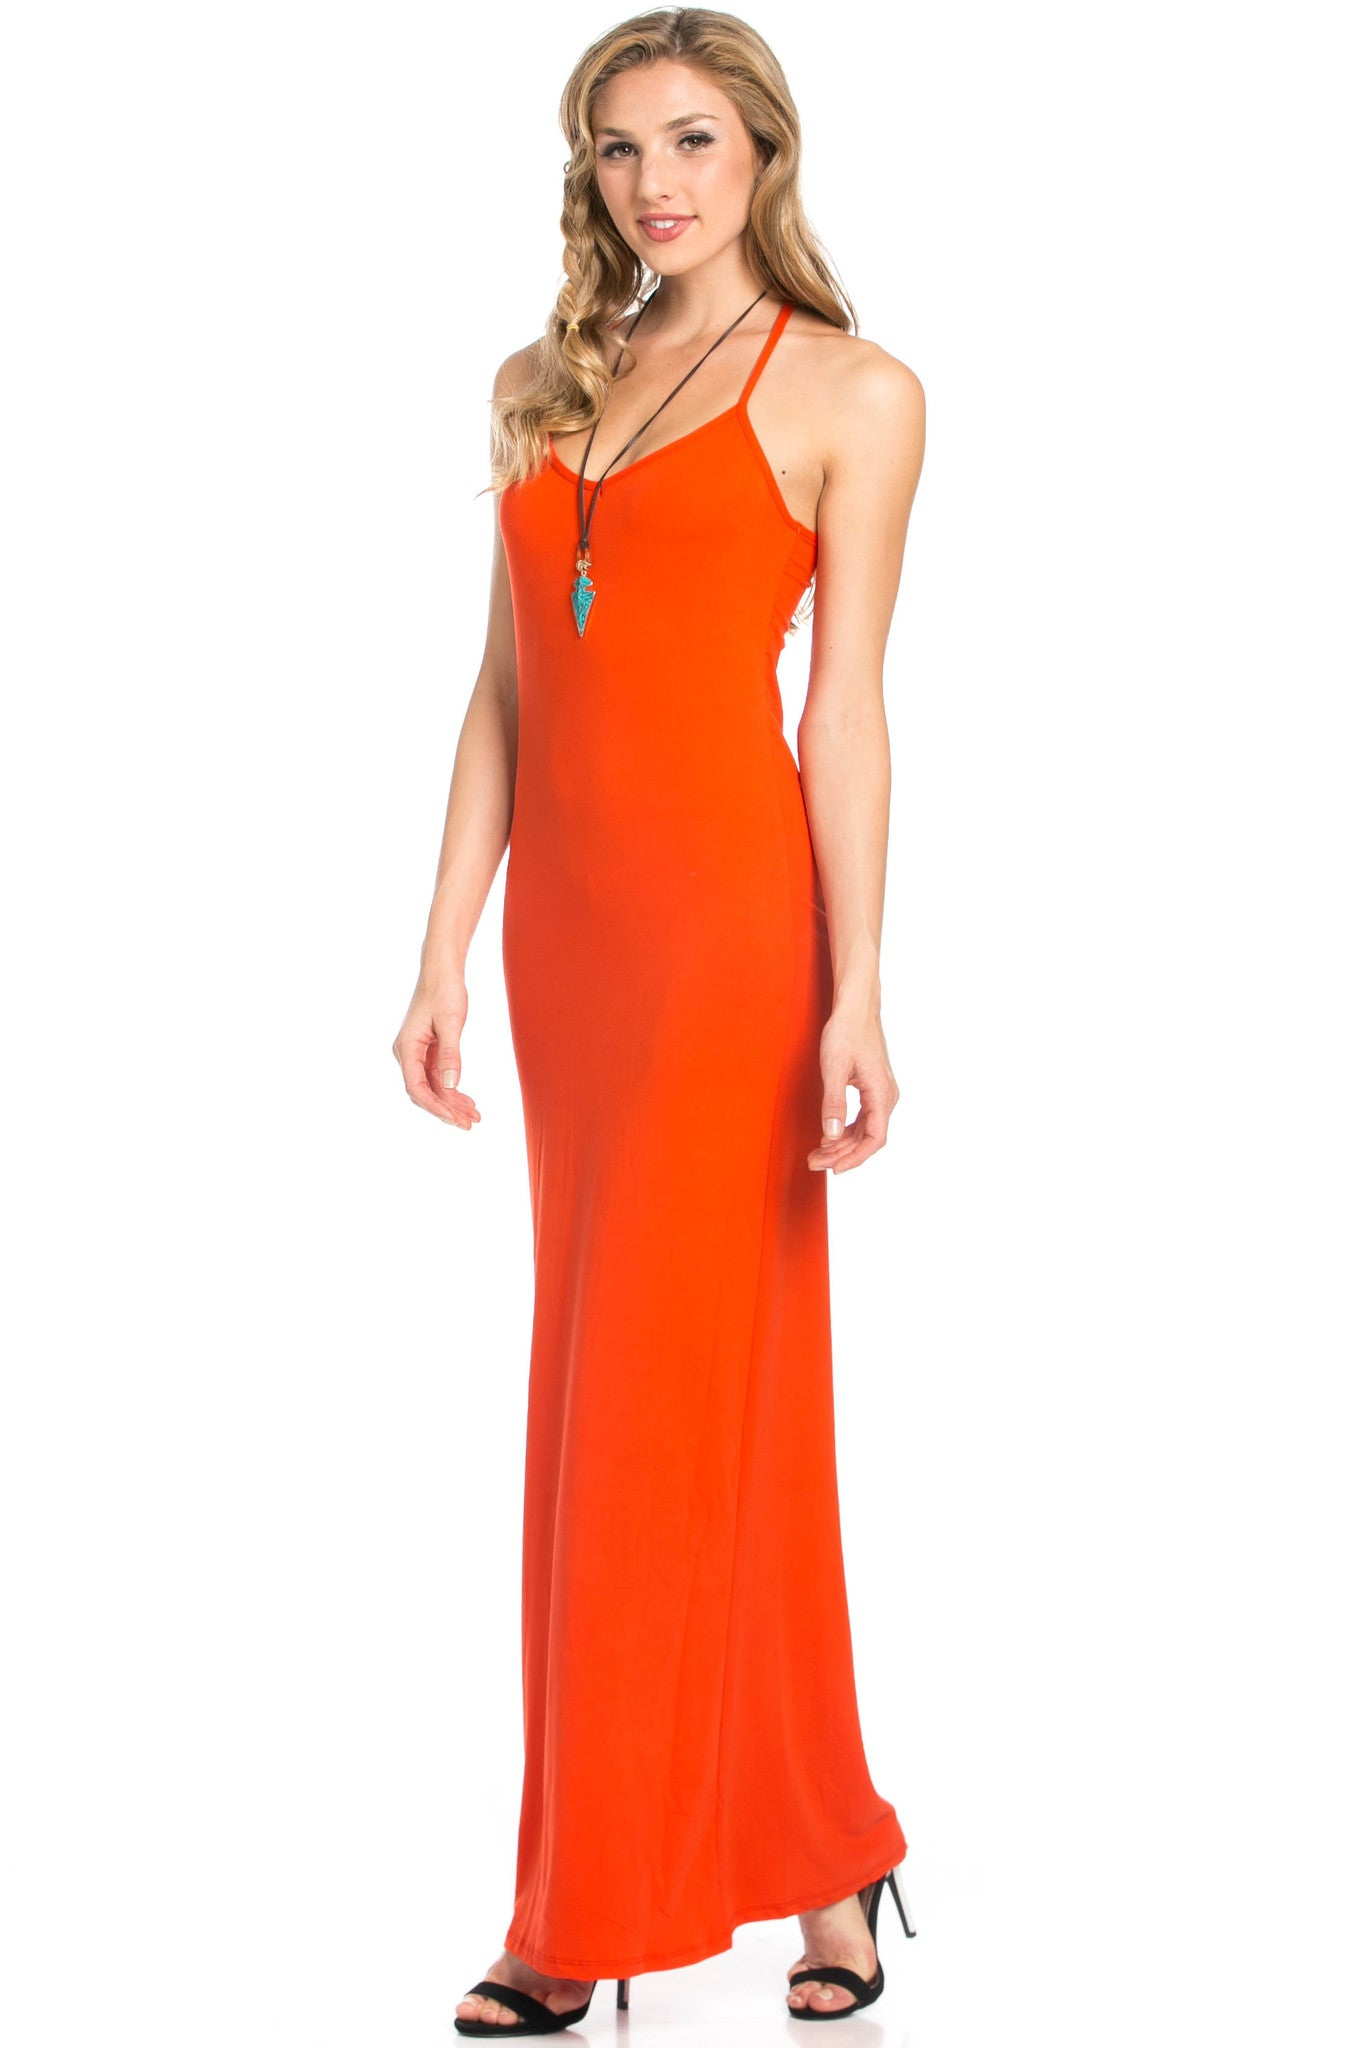 Micro Suede Tomato Maxi Dress - Dresses - My Yuccie - 1